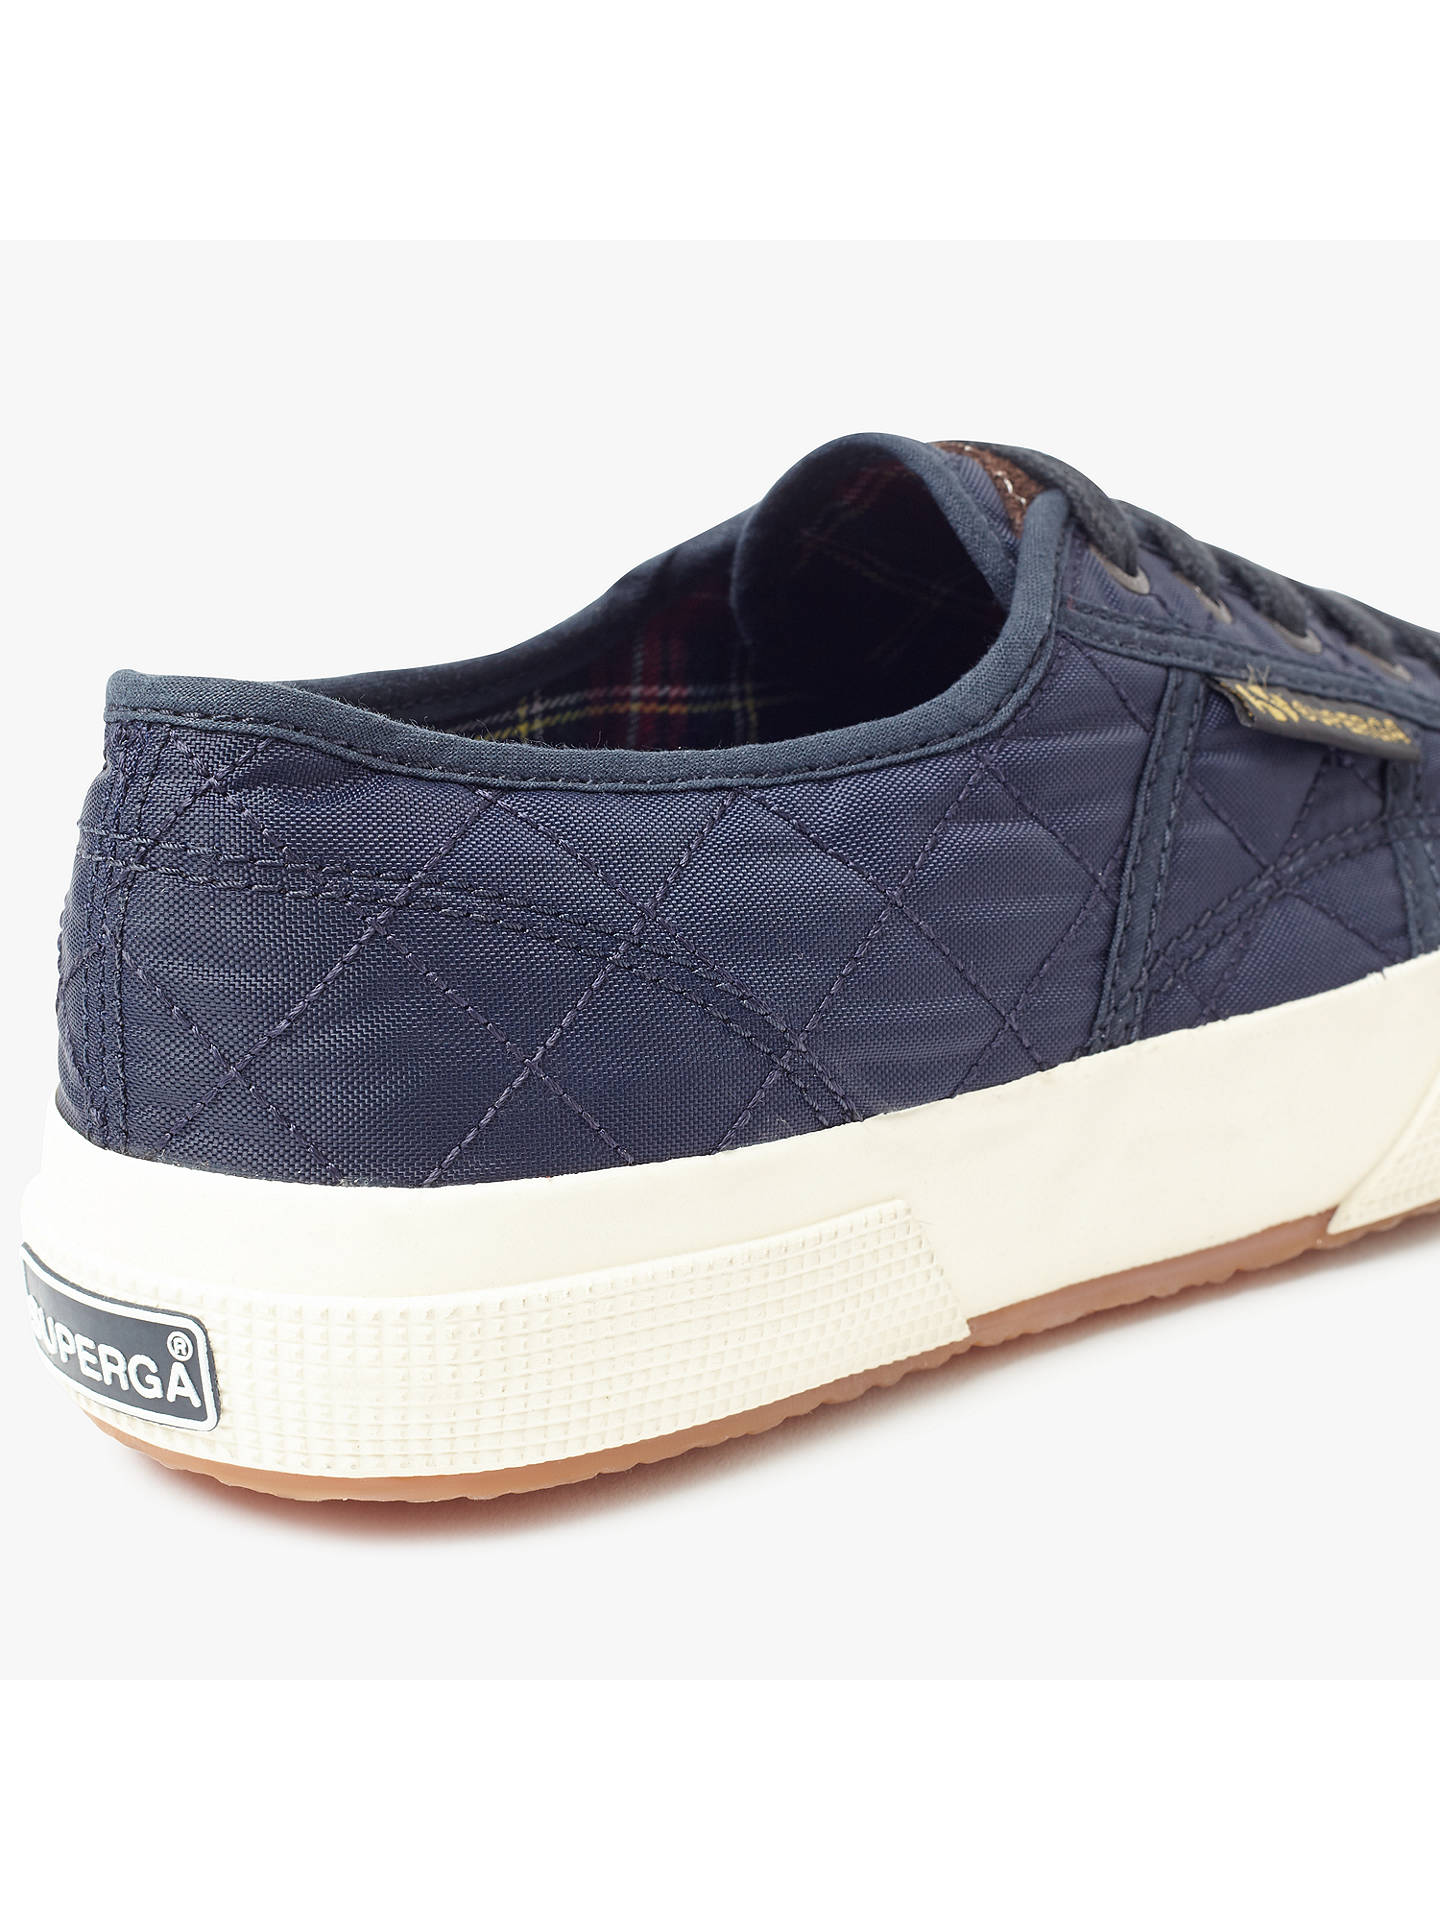 939e09cb68a246 ... Buy Superga 2750 Quilted Lace Up Plimsolls